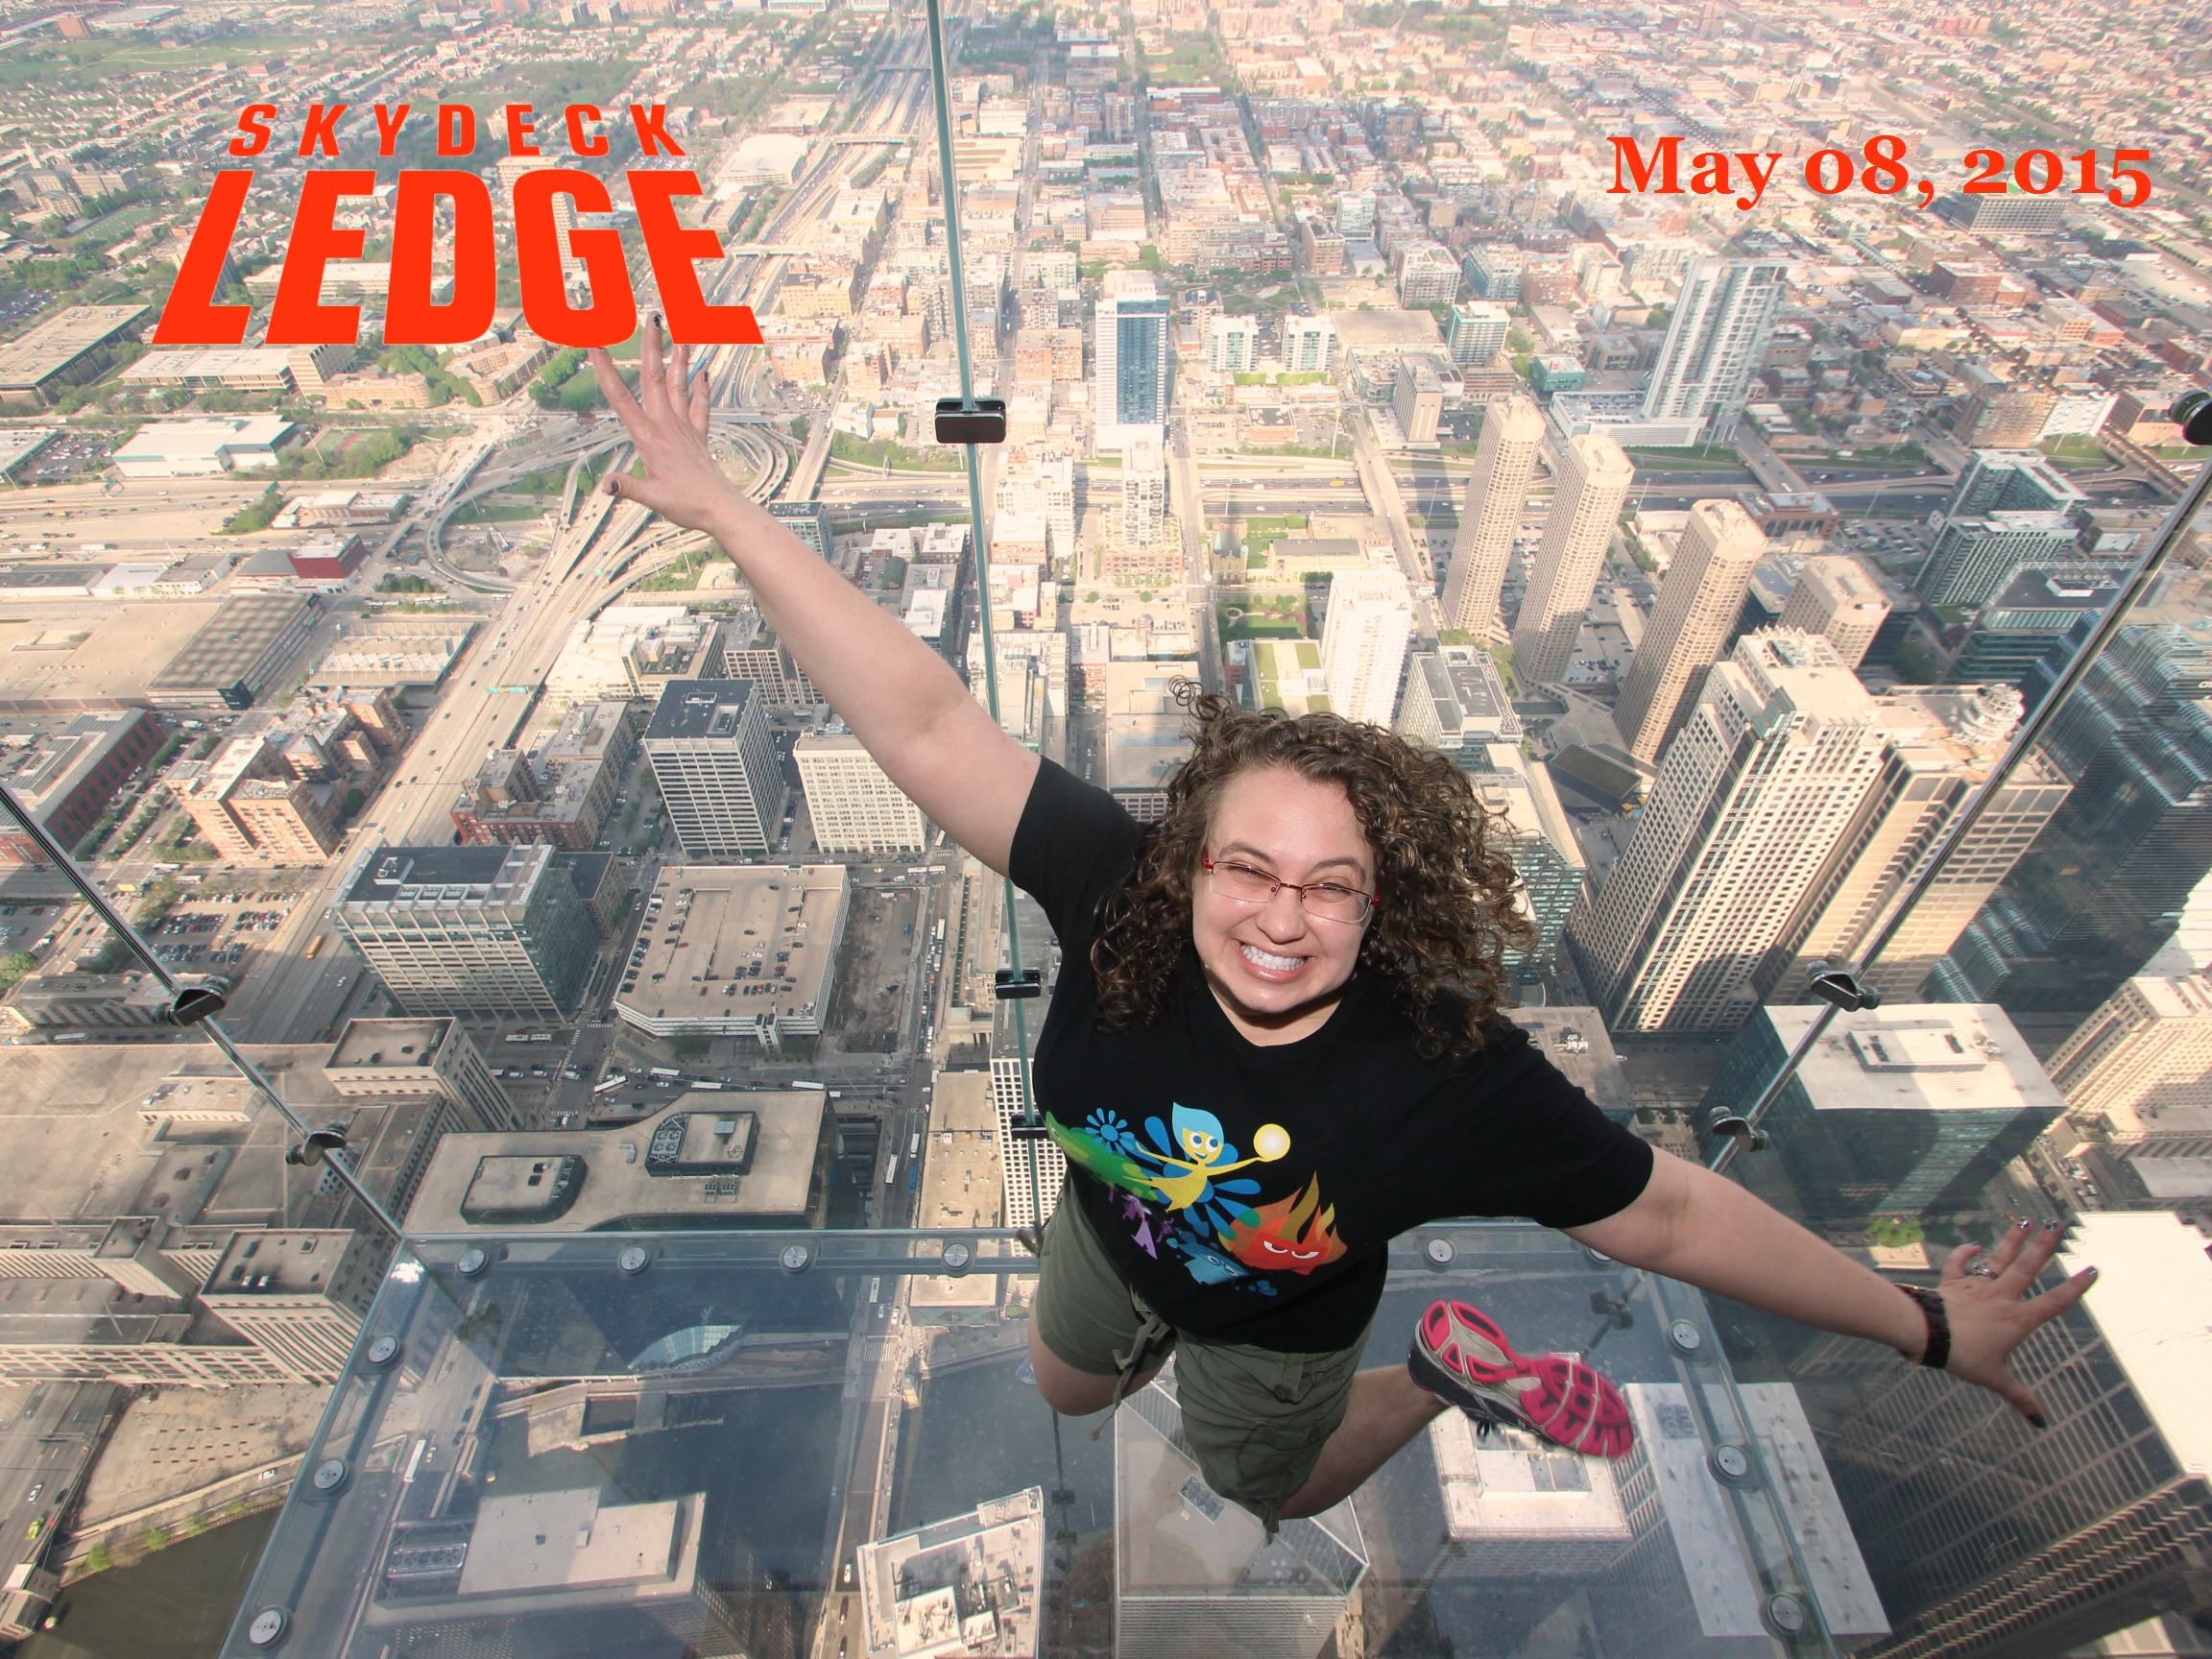 I'm on Top of the World Looking Down on Chicago – My Visit to the Skydeck Ledge